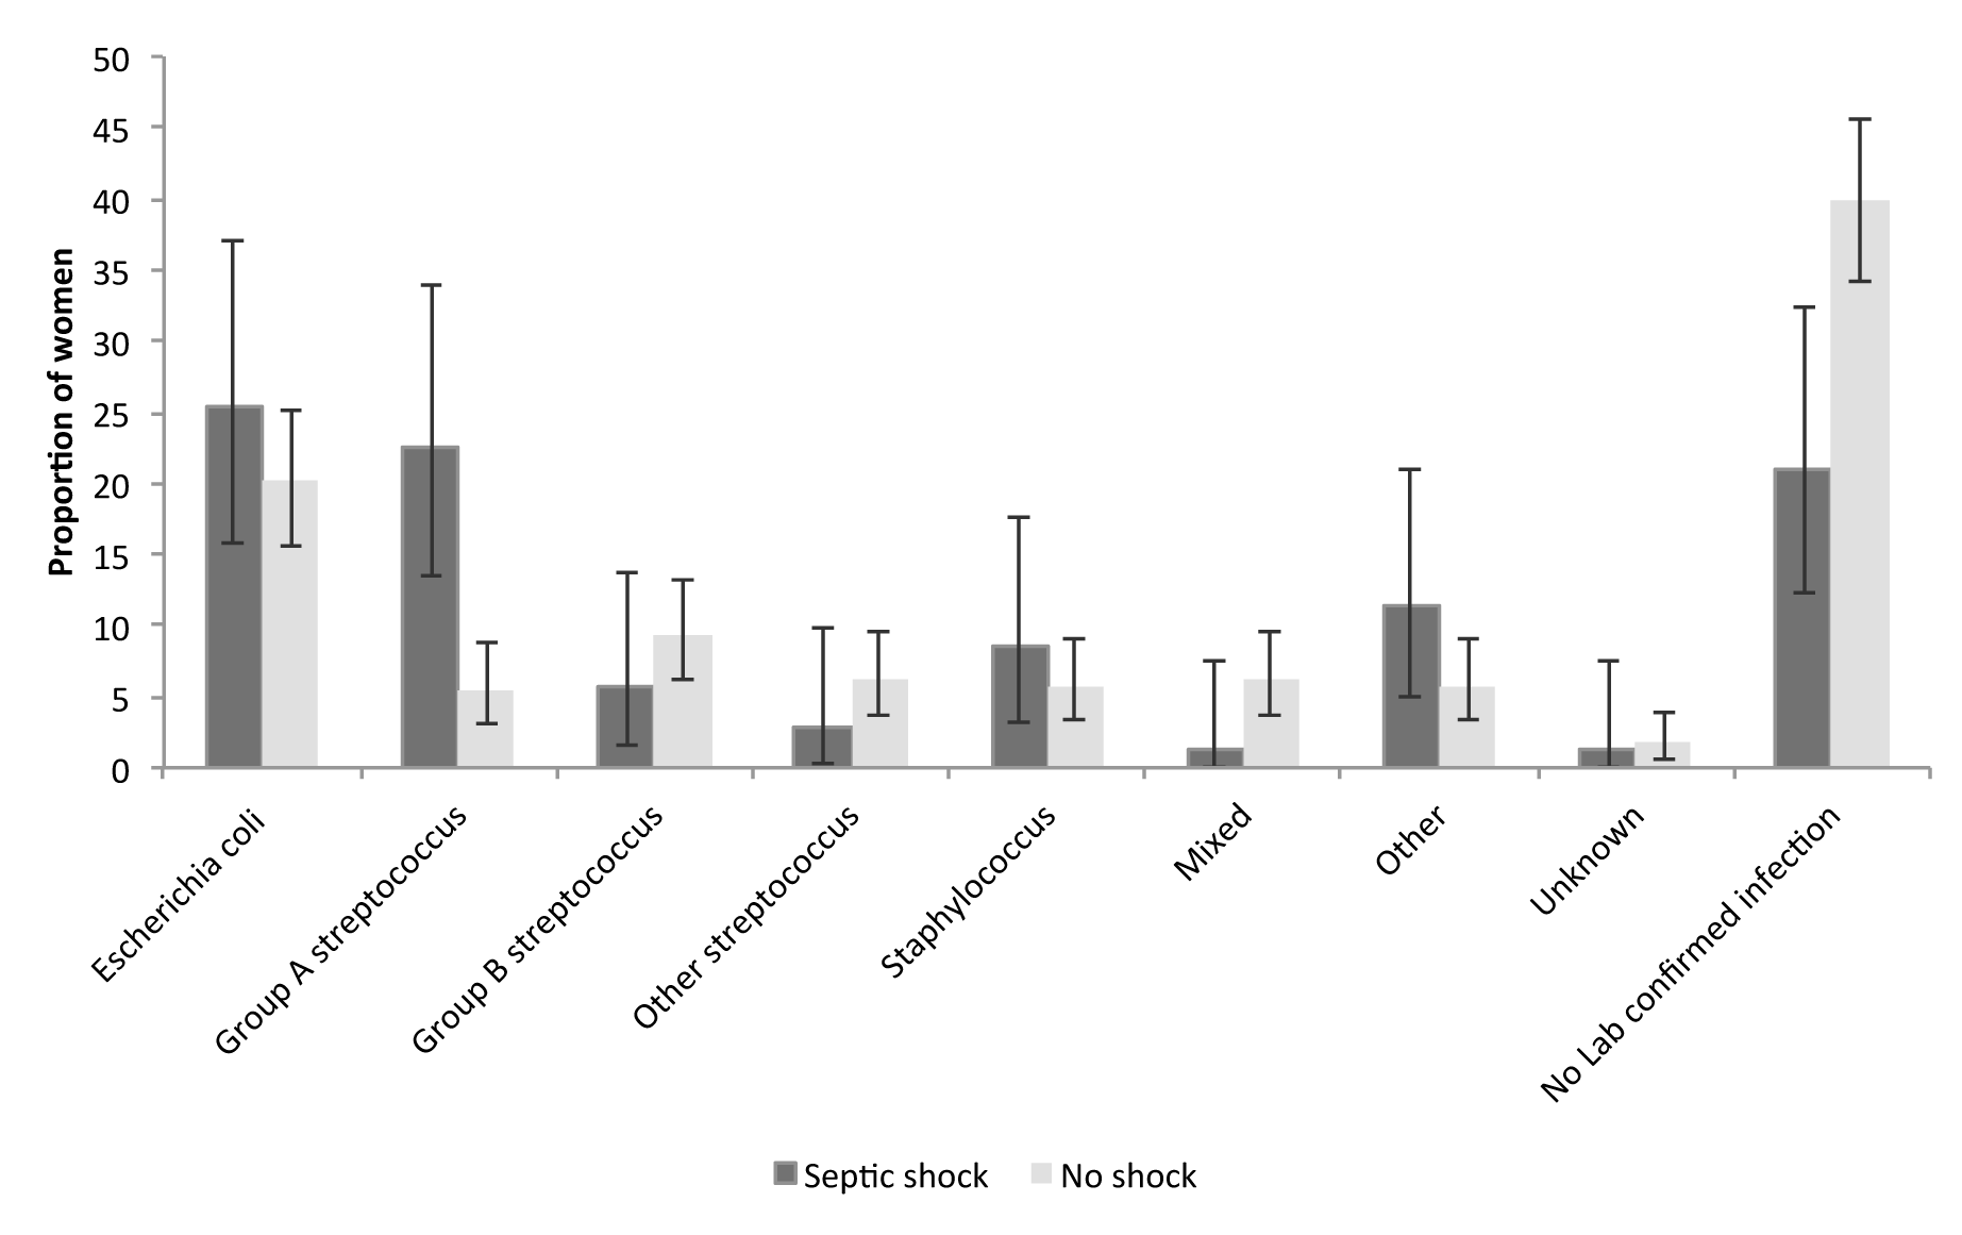 Distribution of causative organisms according to septic shock diagnosis.